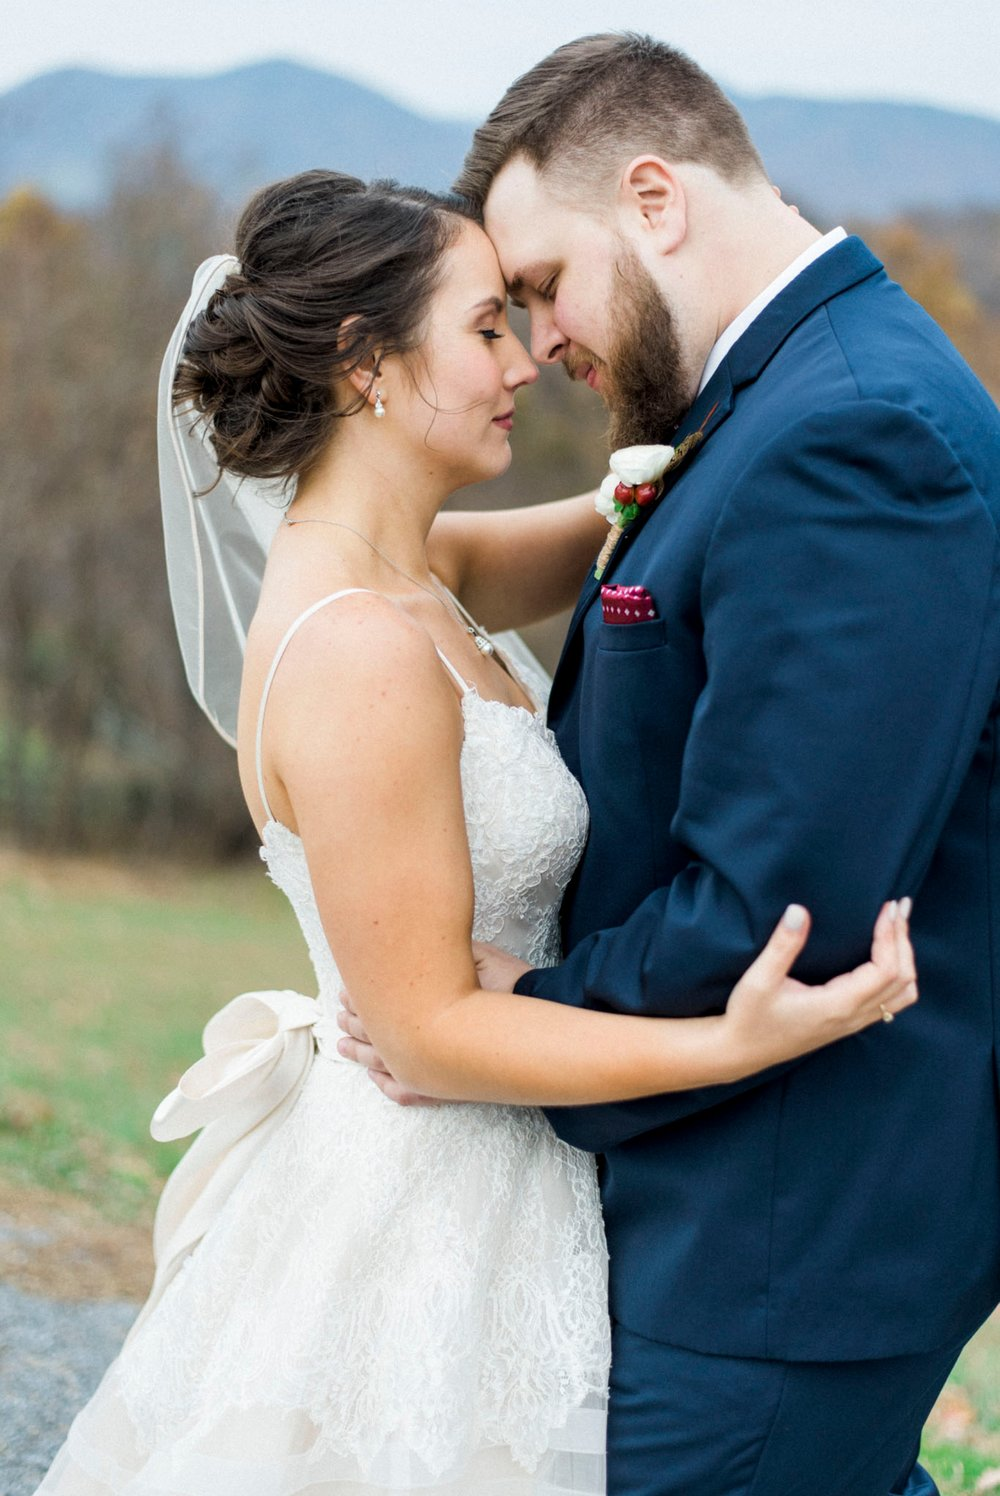 IrvineEstate_LexingtonVA_Wedding_FallWedding_VirginiaWeddingPhotographer 87.jpg